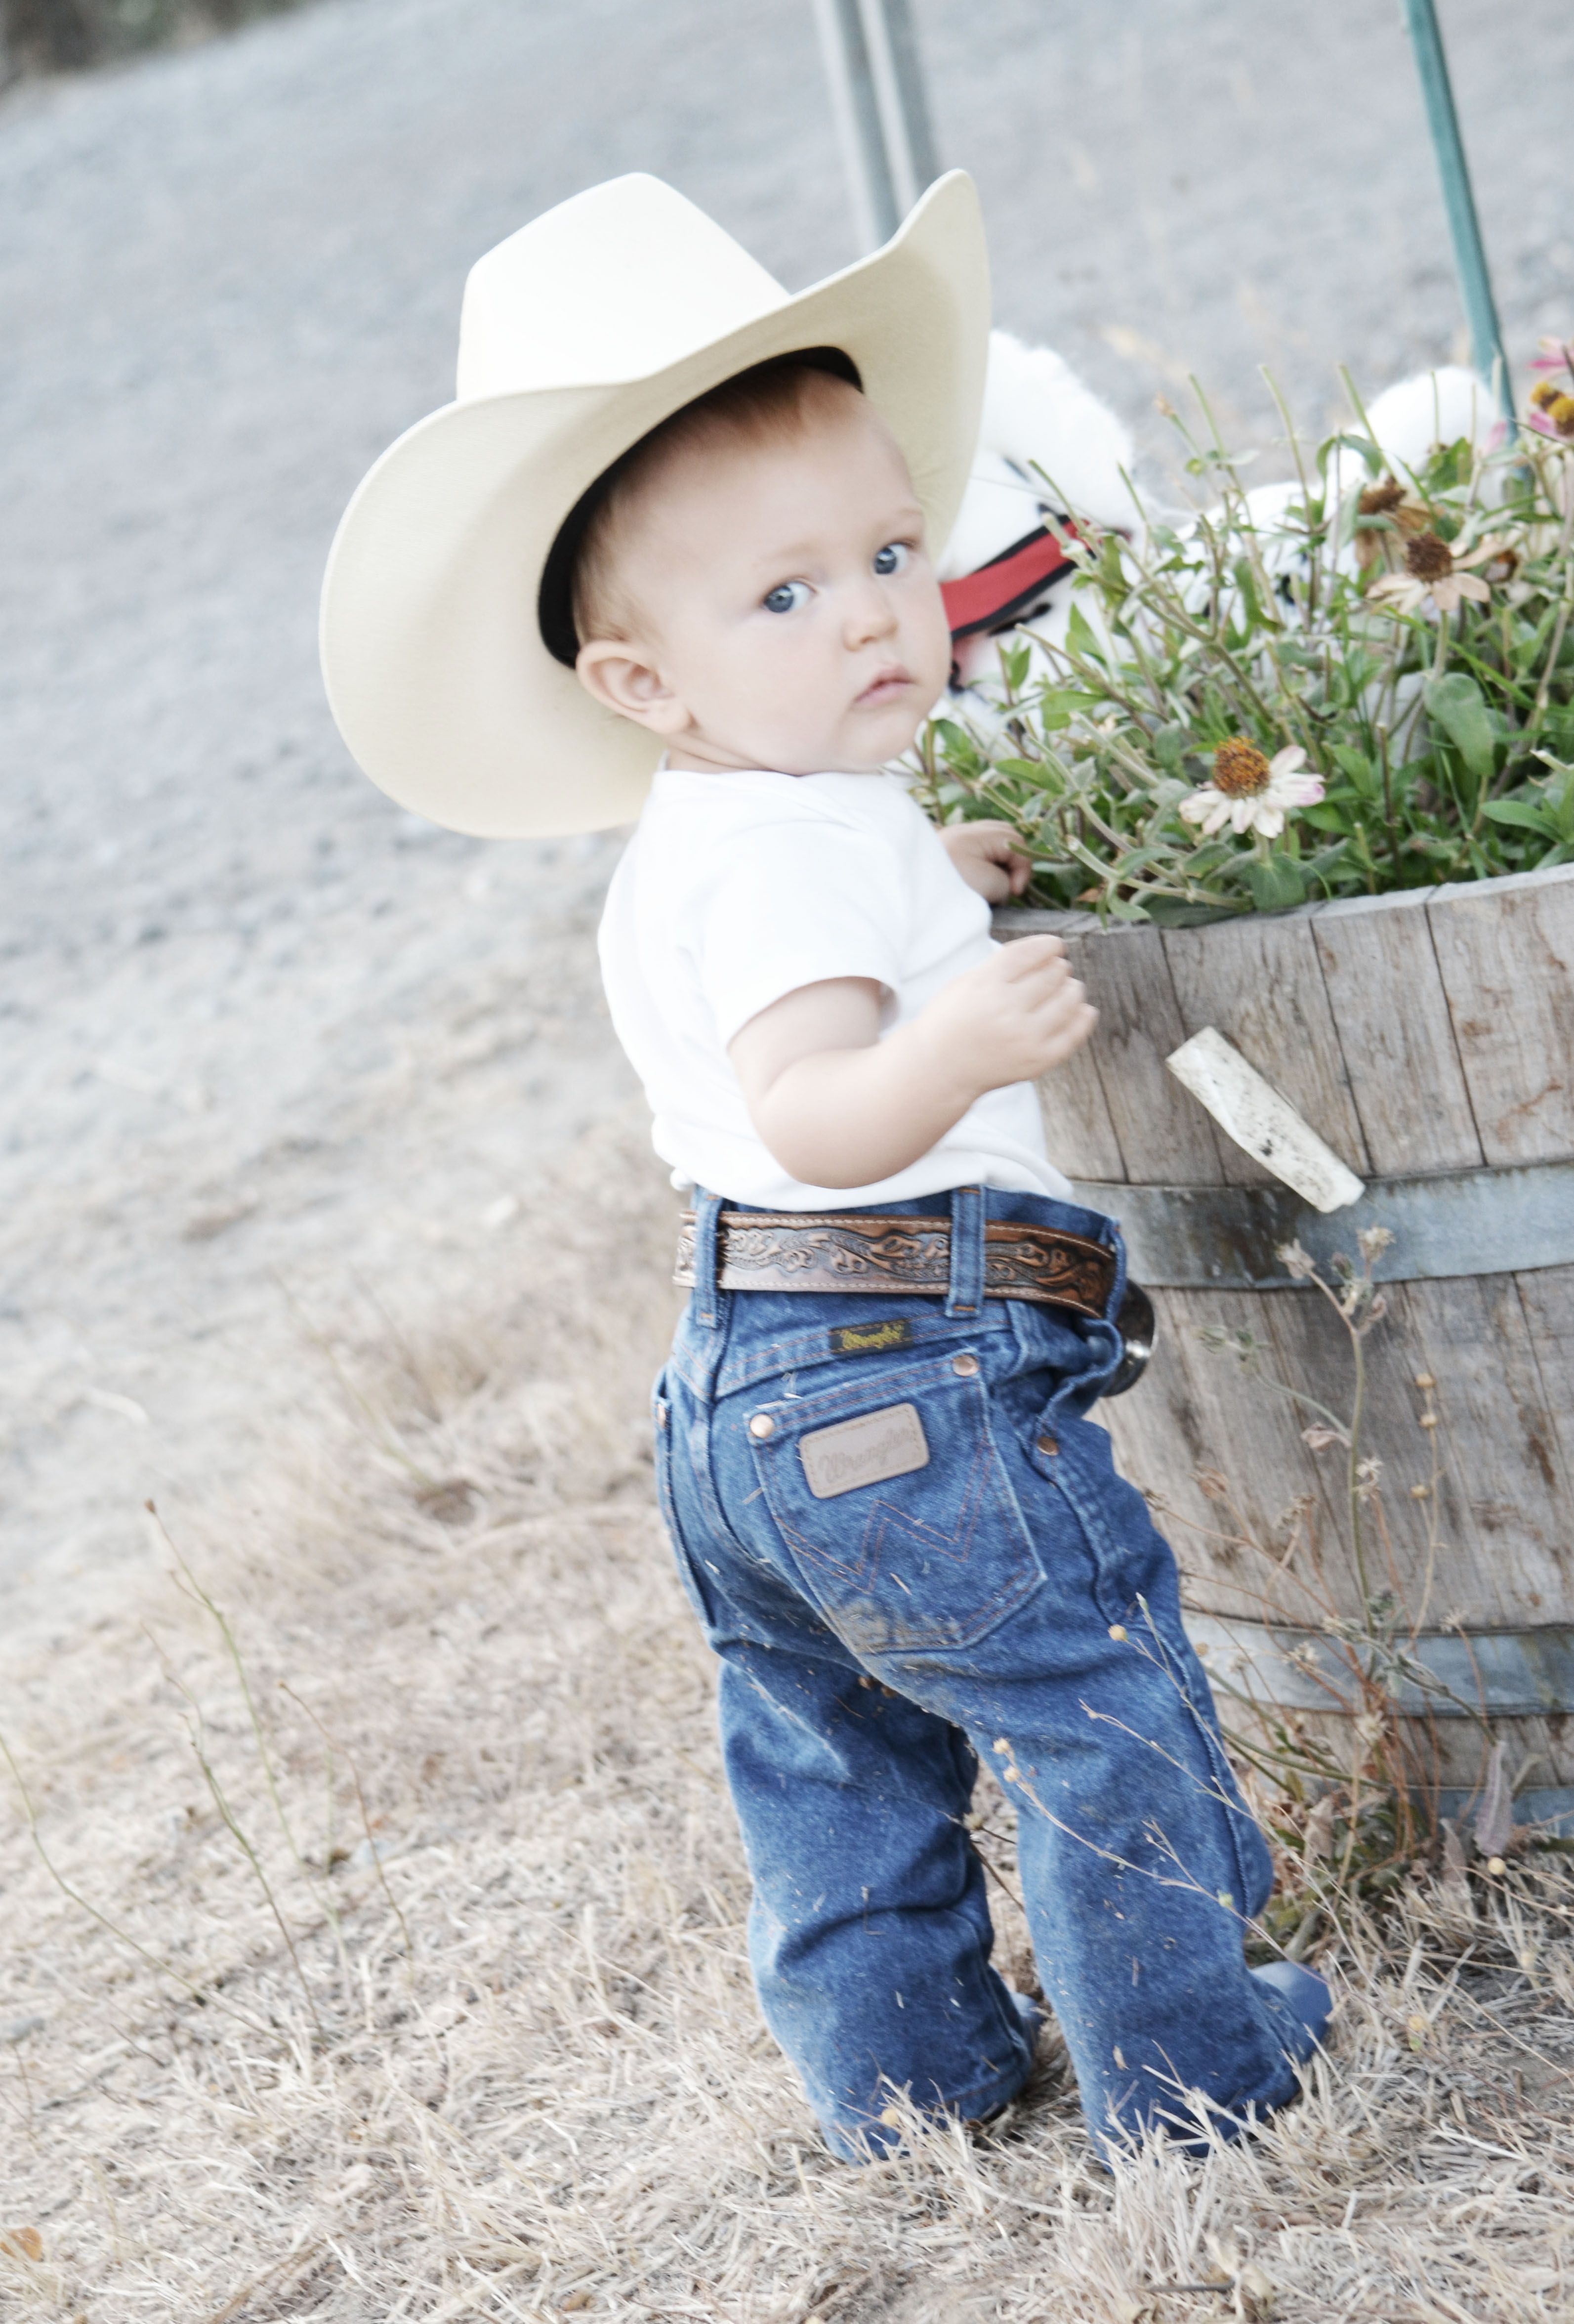 baby wrangler butt cowboy hat kiddo and his pony